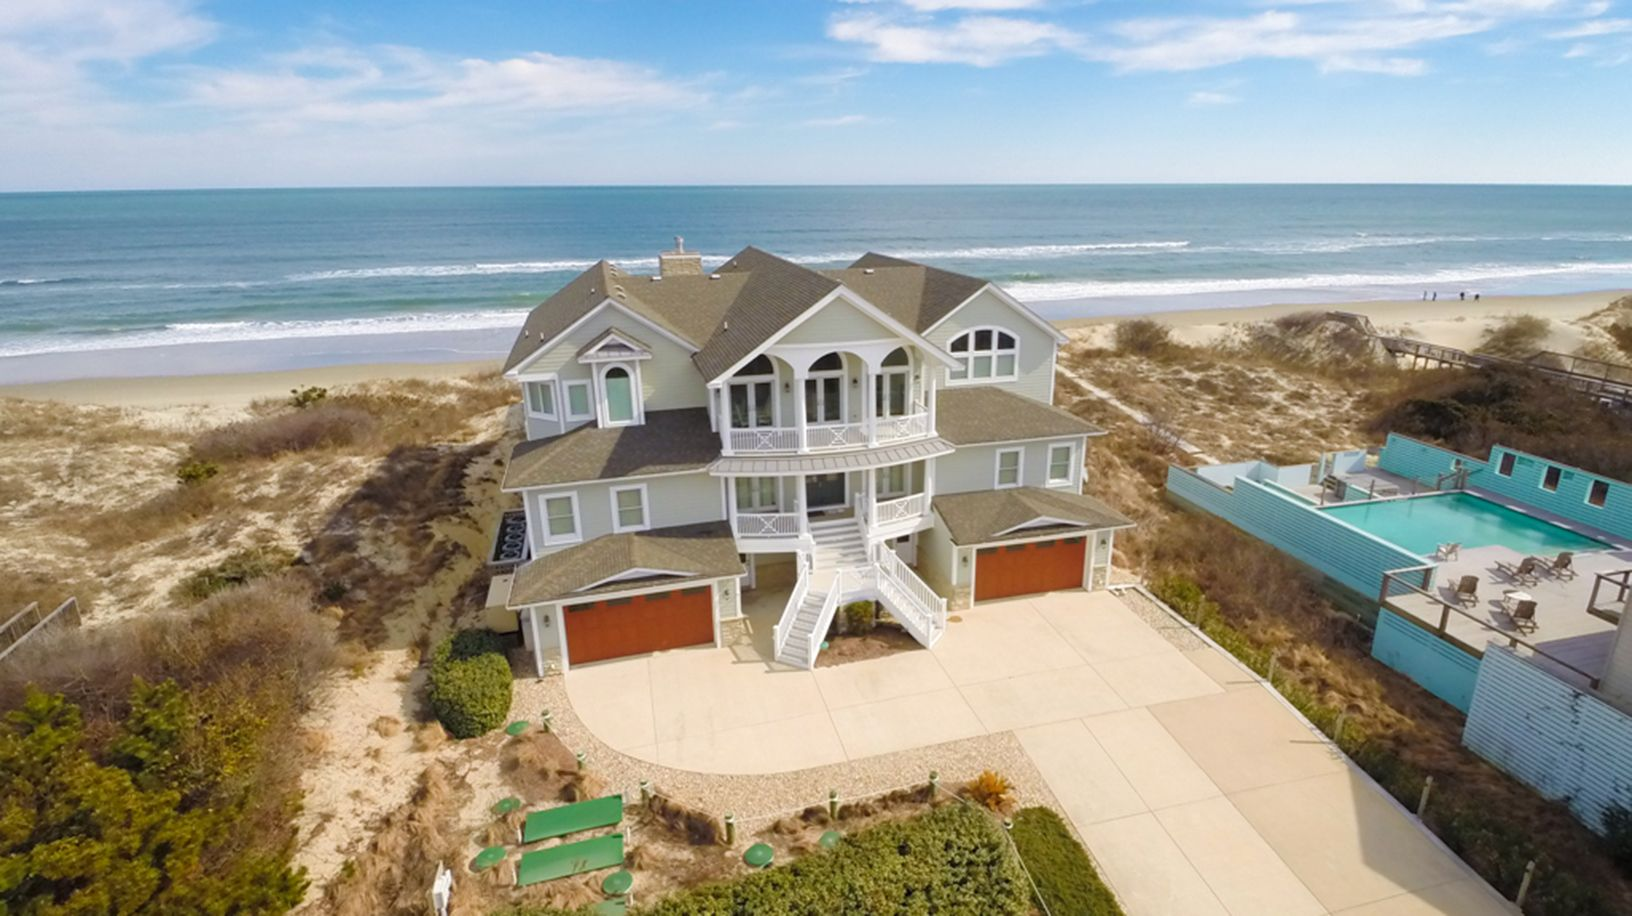 The Perfect Storm  J10915 is an Outer Banks Oceanfront